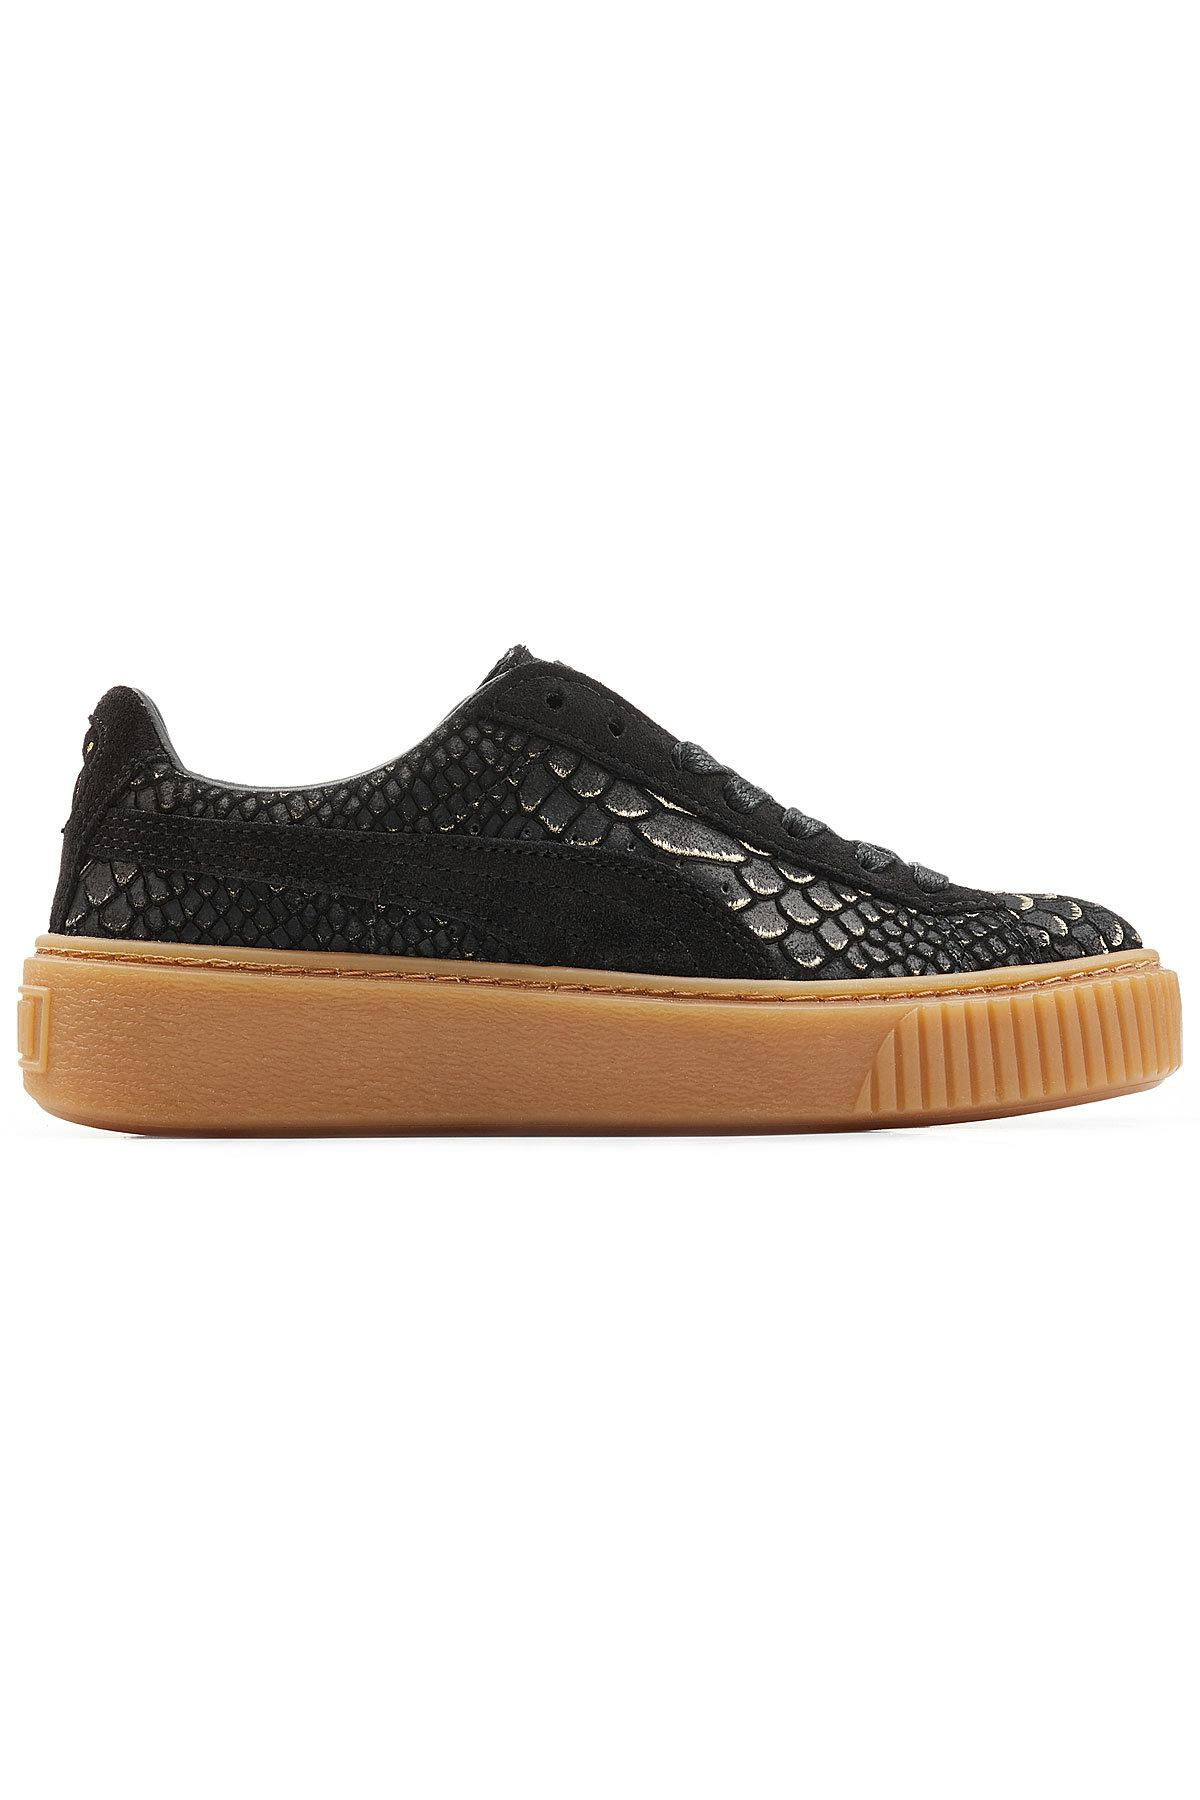 Sale Collections Puma Textured Leather Creeper Sneakers Sale For Sale Discounts Sale Online Wholesale Quality kApCA7f64